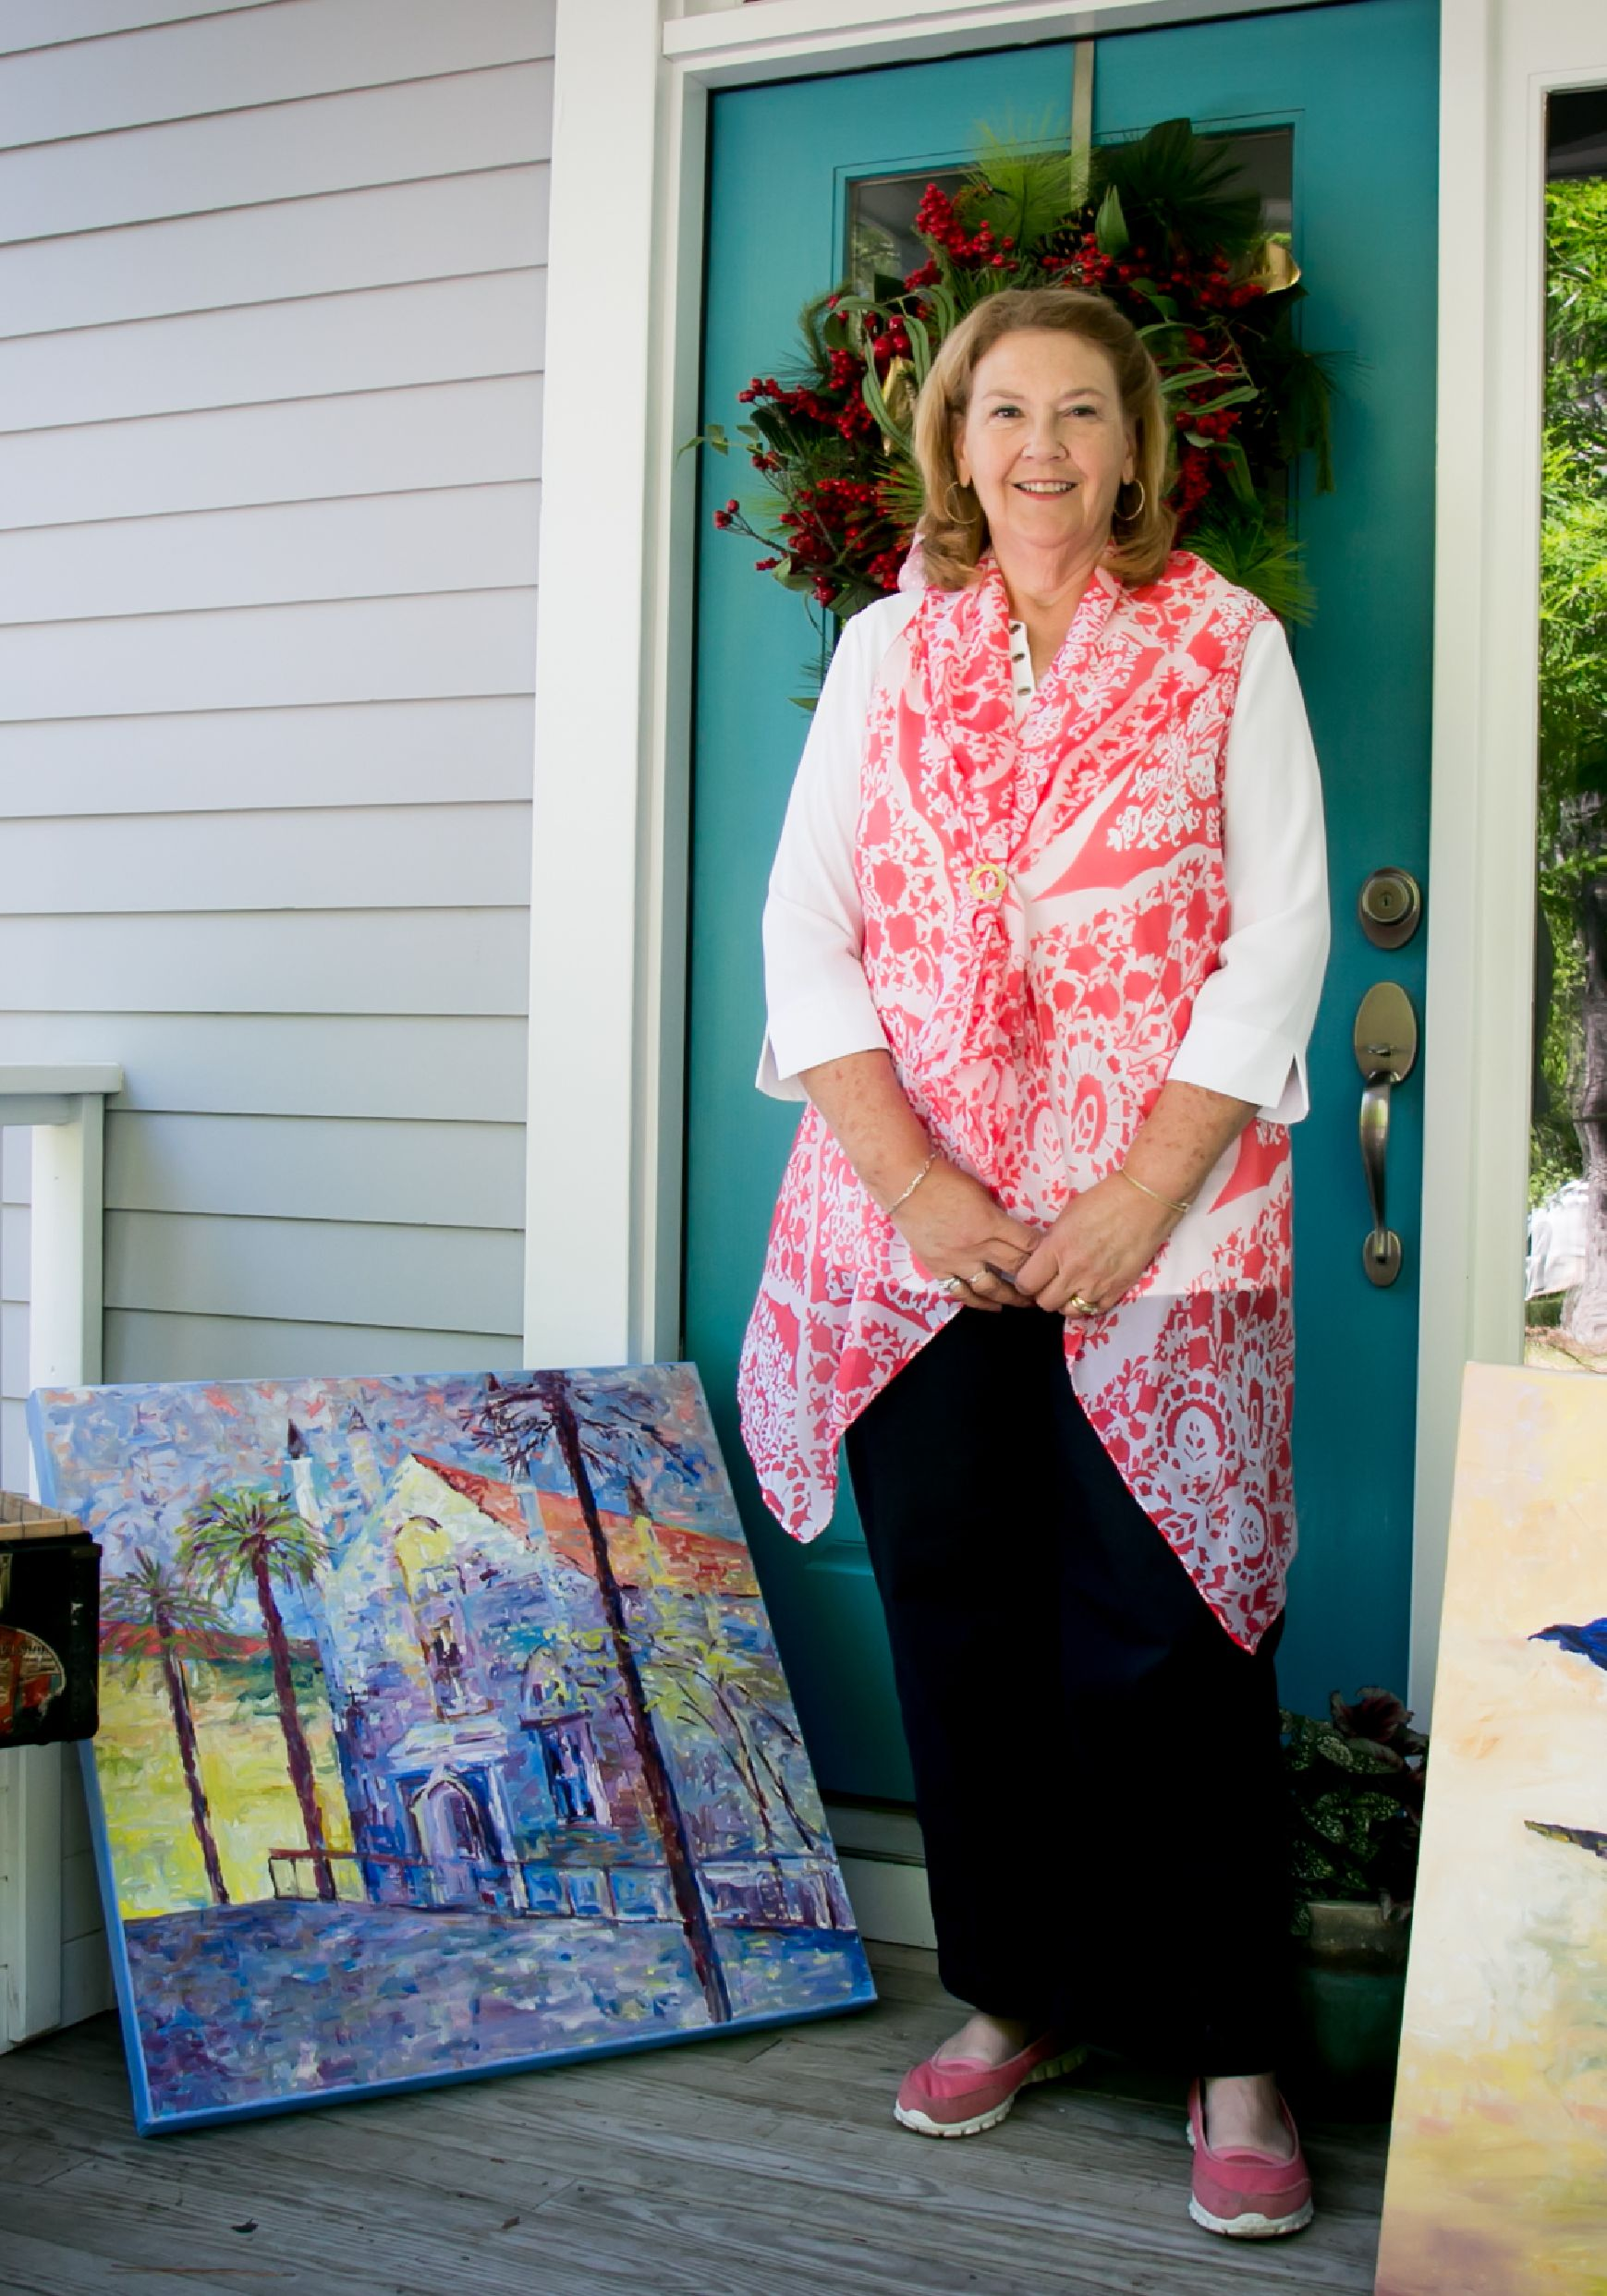 Woodsong painter artist